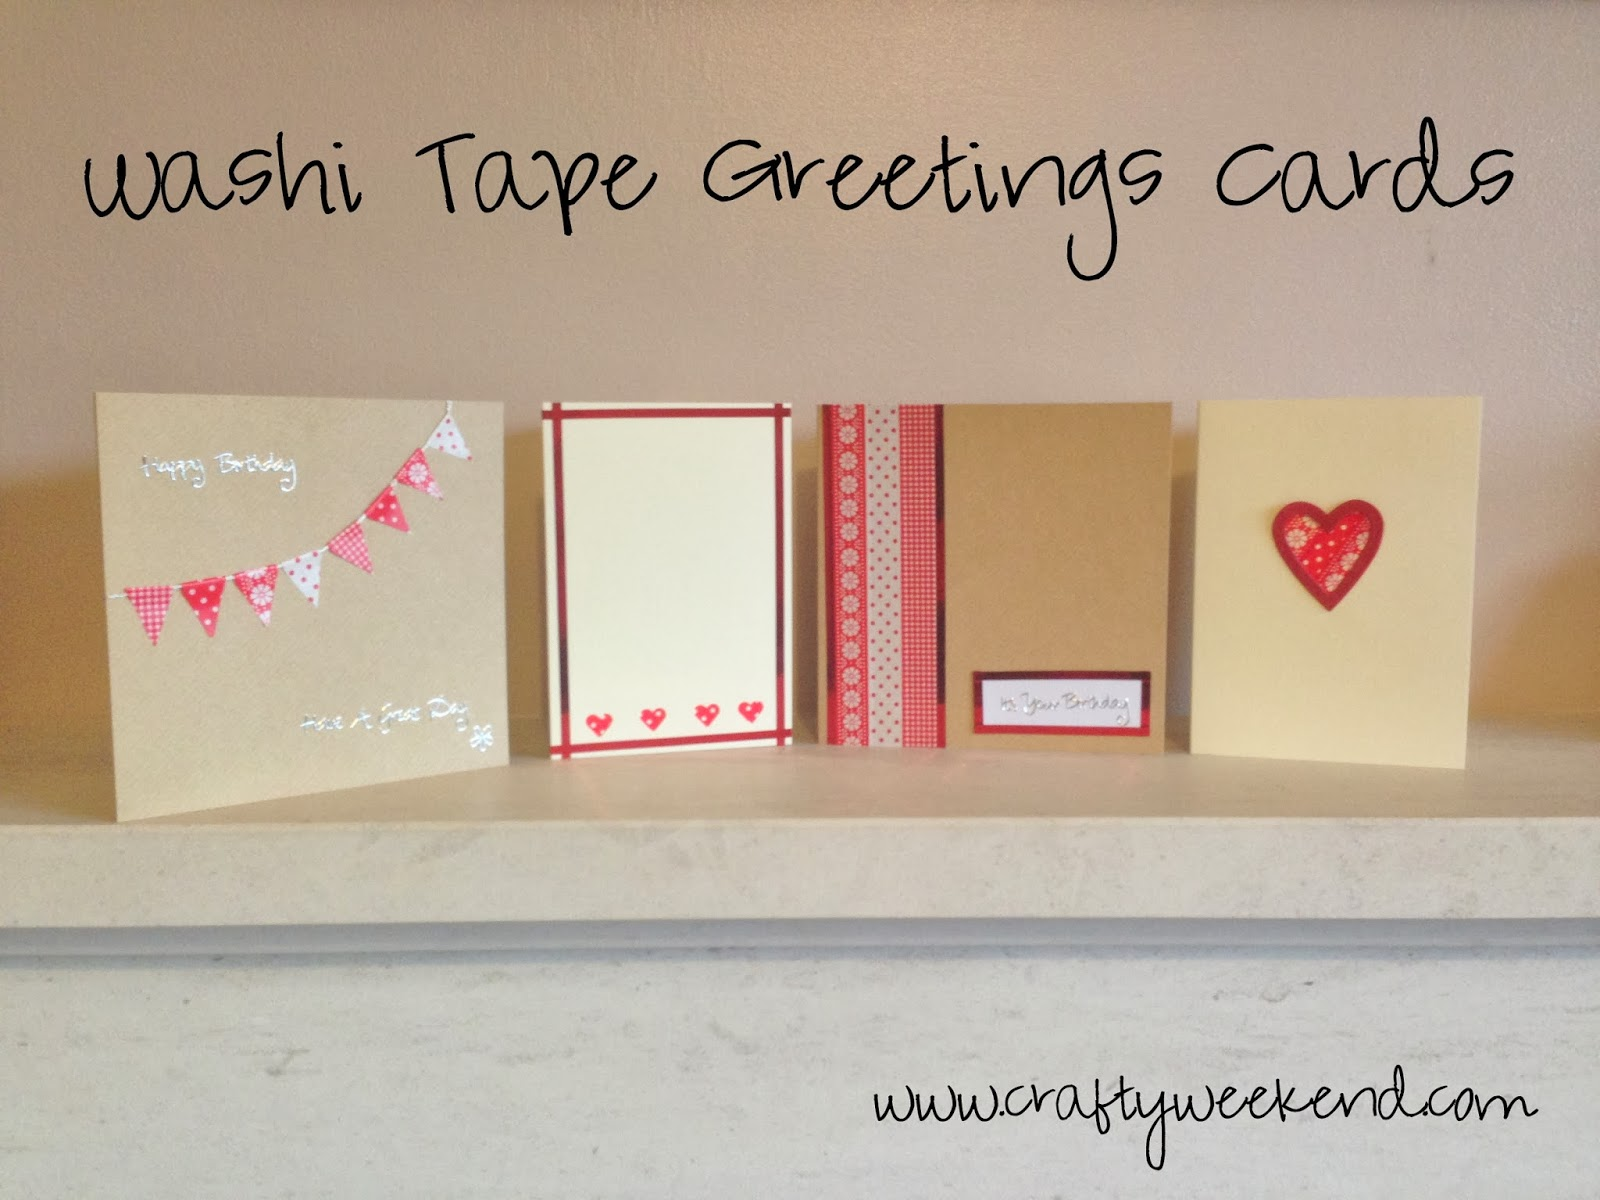 washi tape greetings cards